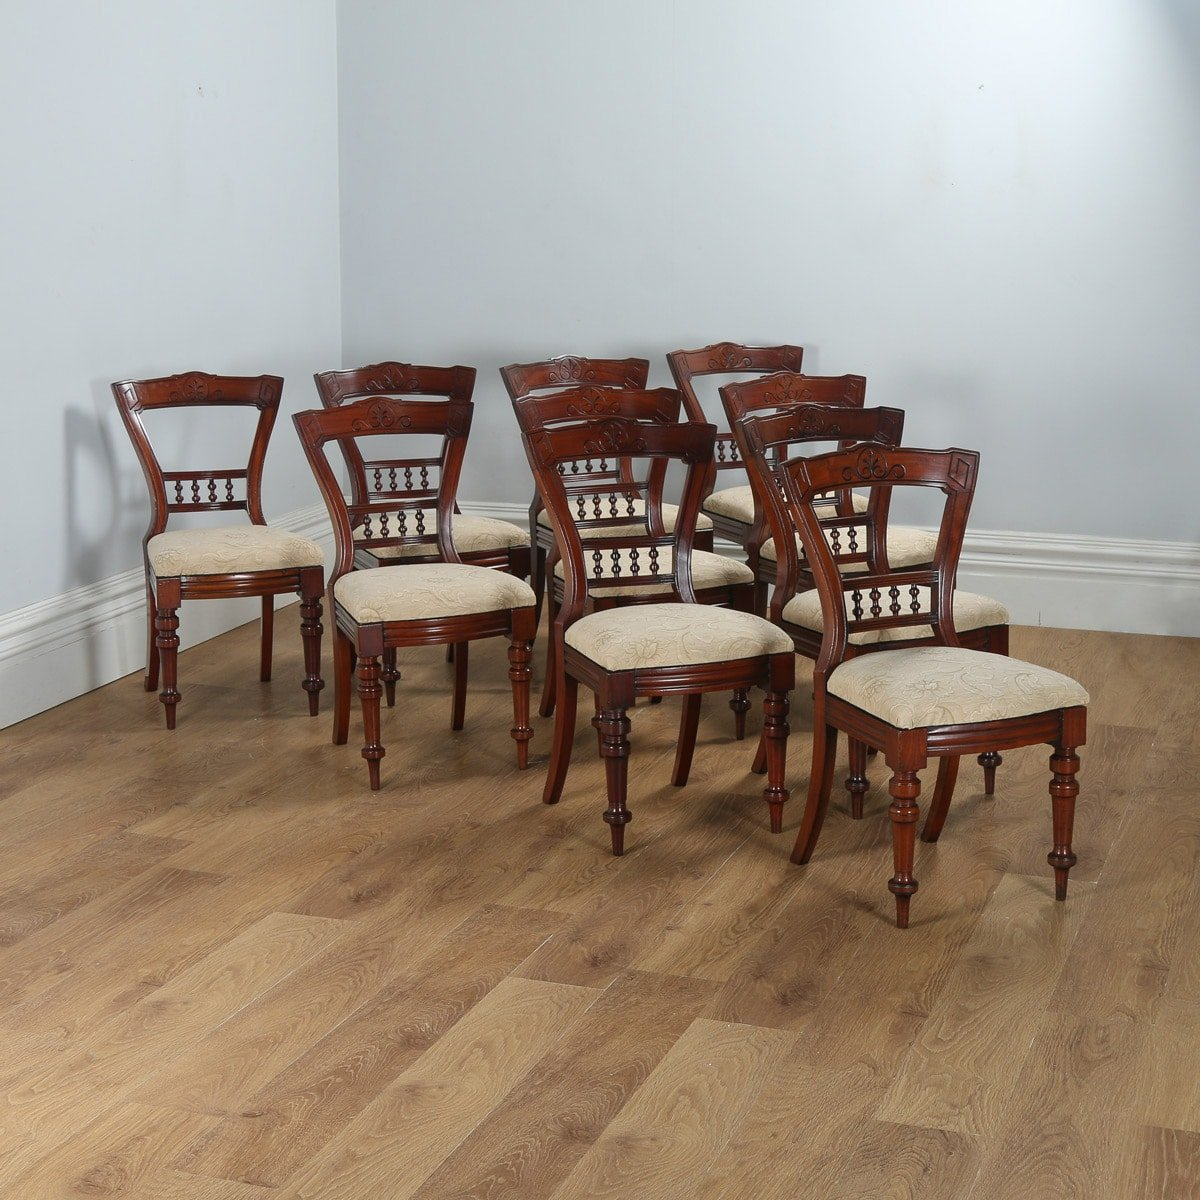 Antique Victorian Set Of 10 Mahogany Upholstered Dining Chairs By JBCW Circa 1890